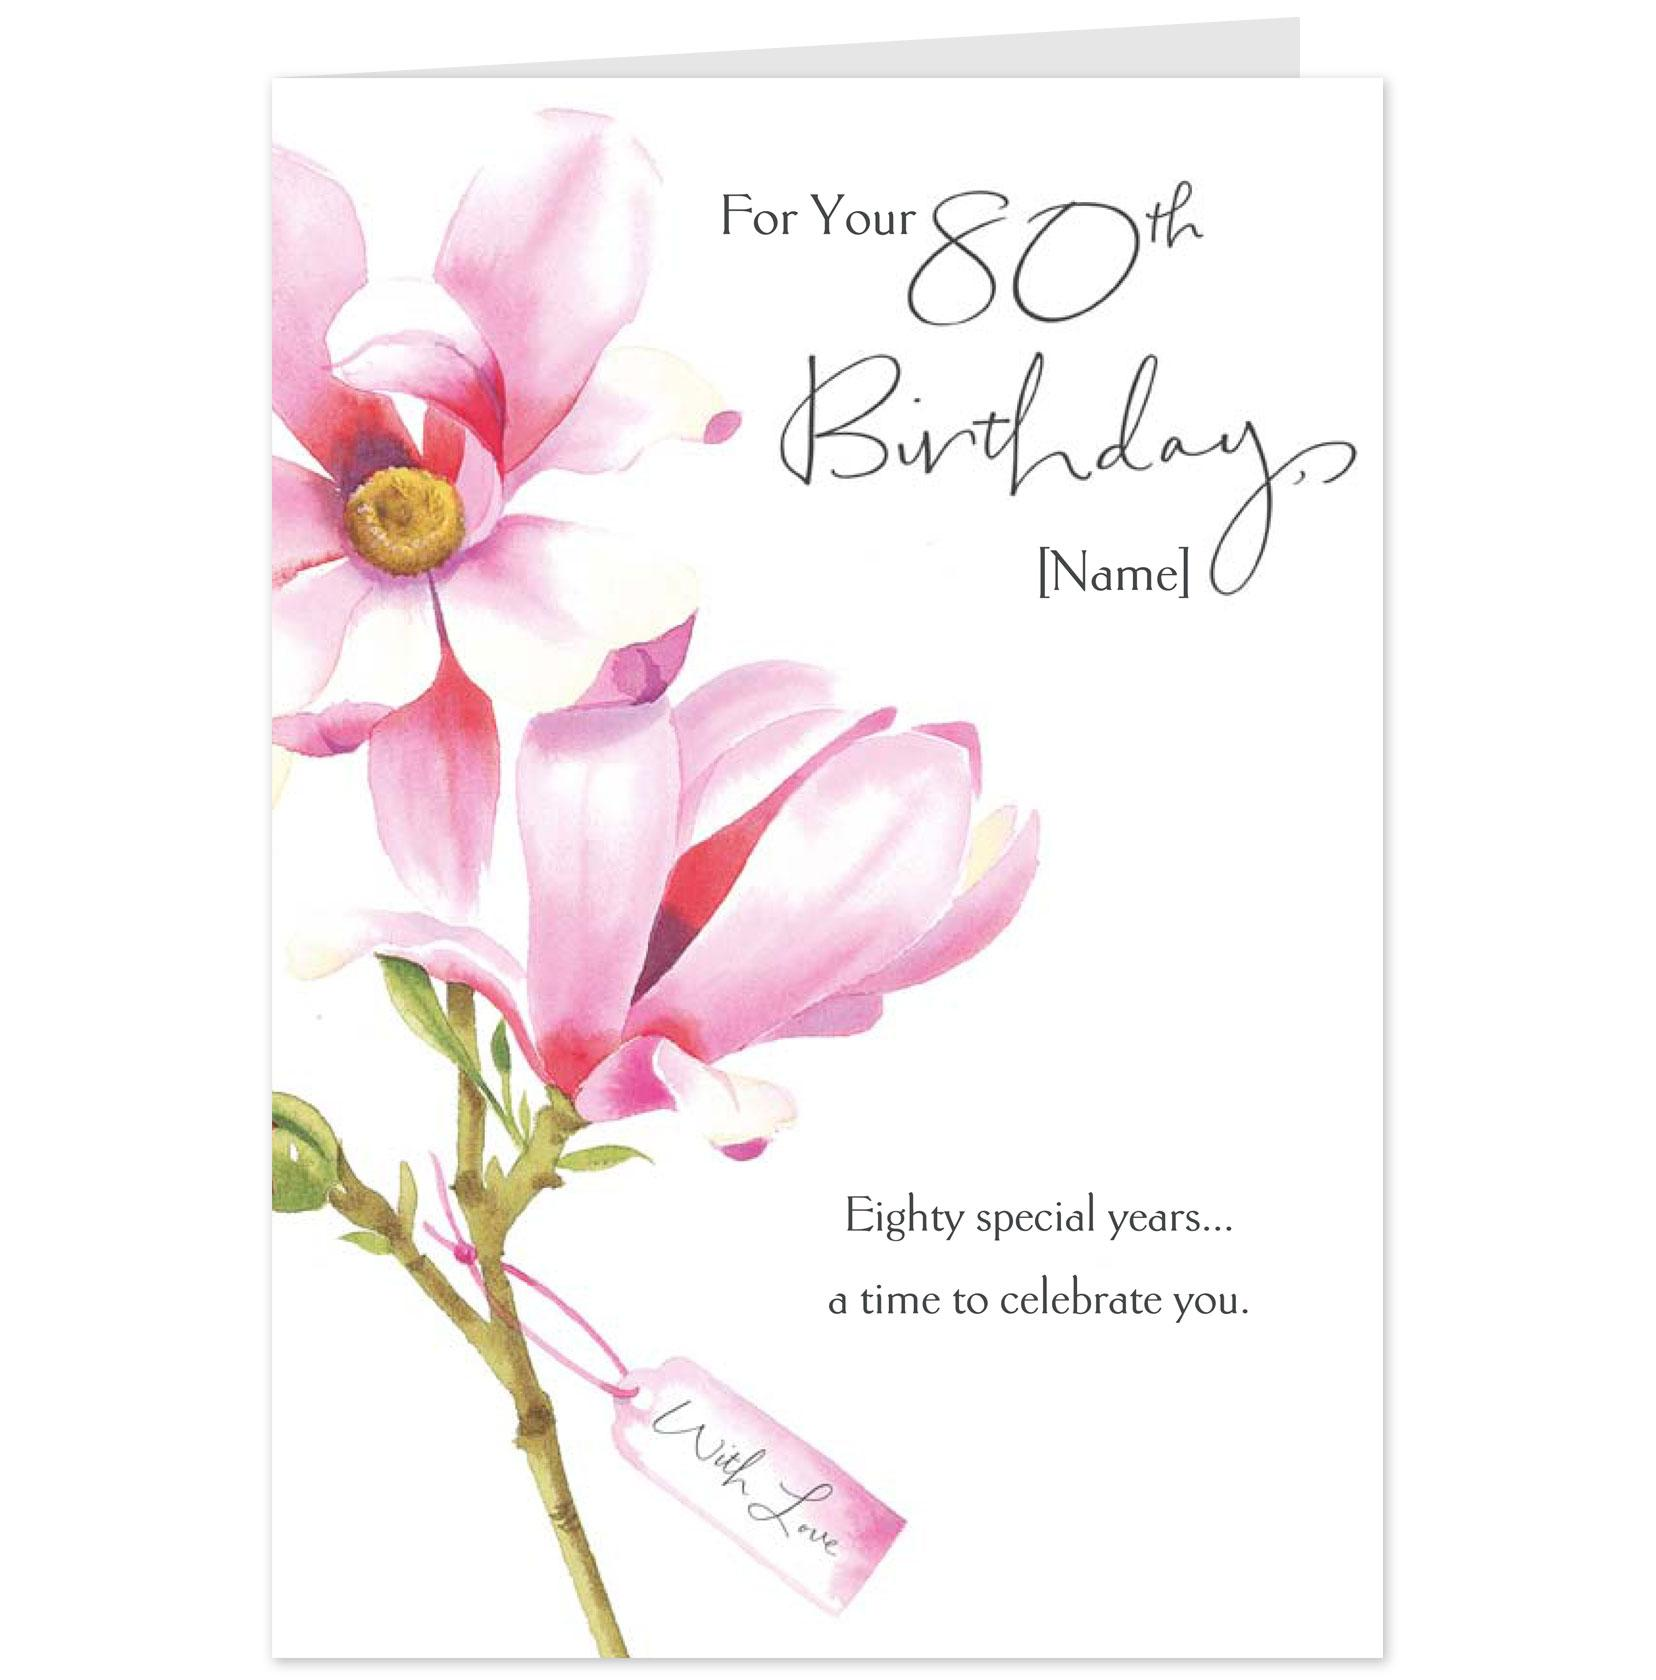 Doc7701083 Message for 80th Birthday Card AMSBE Free 80th – What to Write in 80th Birthday Card